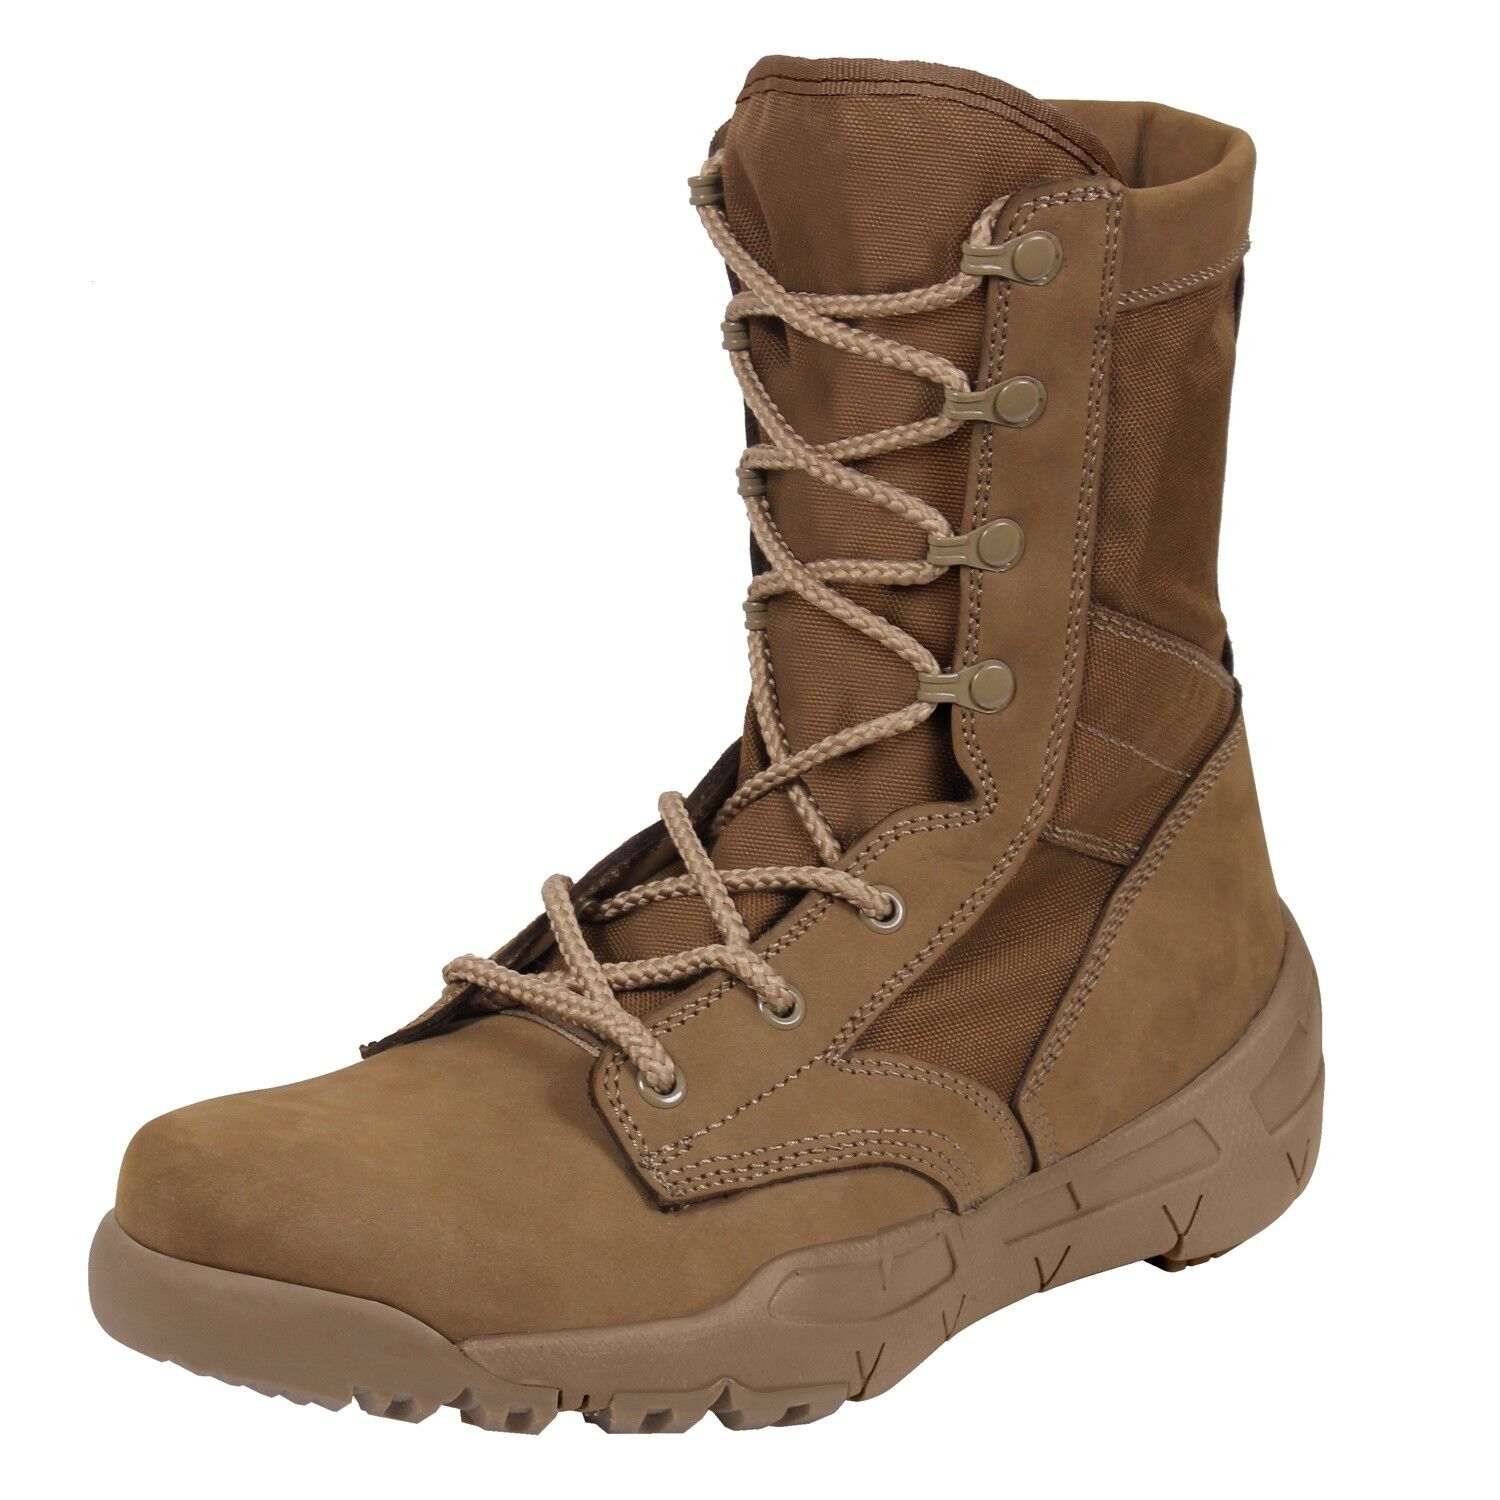 Boot V-Max Lightweight AR 670-1 Coyote Brown Tactical  5366 Rothco